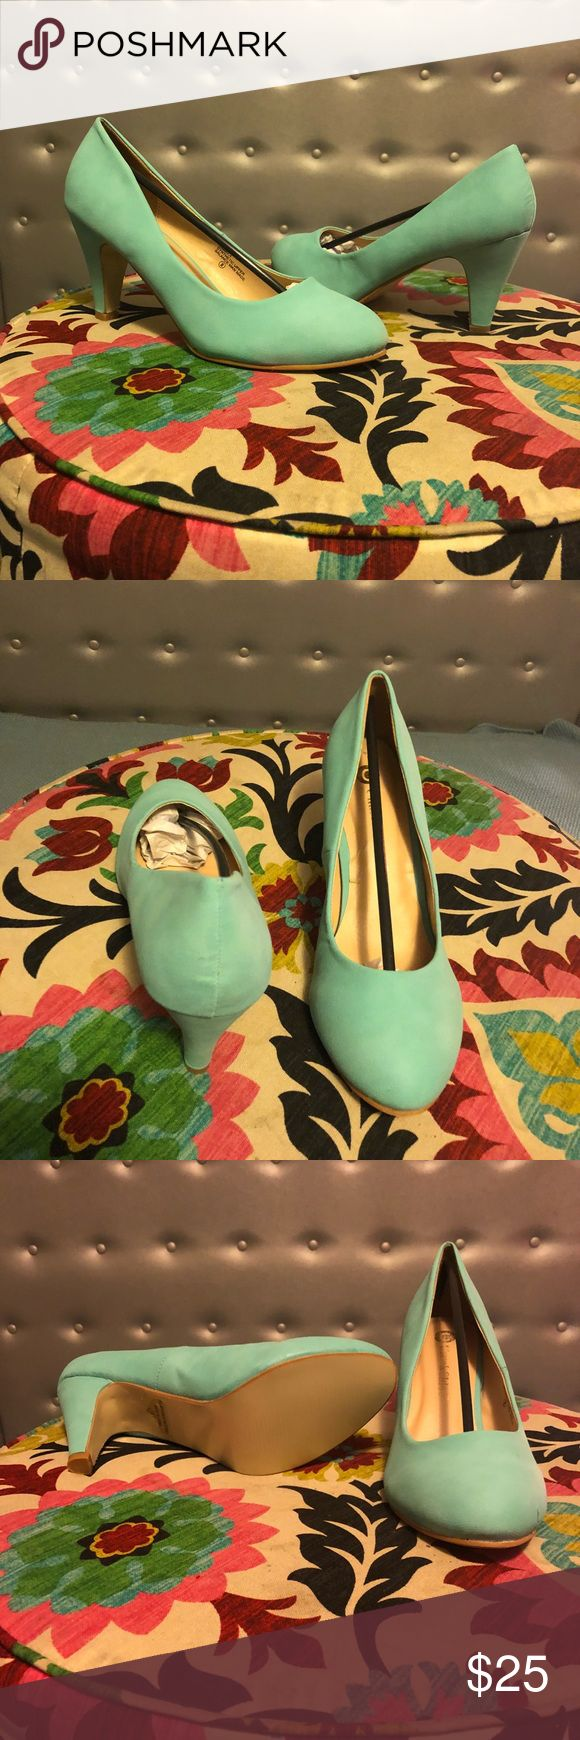 "Size 8 mint pumps Mint pump heels size 8 by Chase & Chloe, ordered new from ModCloth. Brand new never worn, comes in original box and packaging. 3"" heel, no platform. Modcloth Shoes Heels"